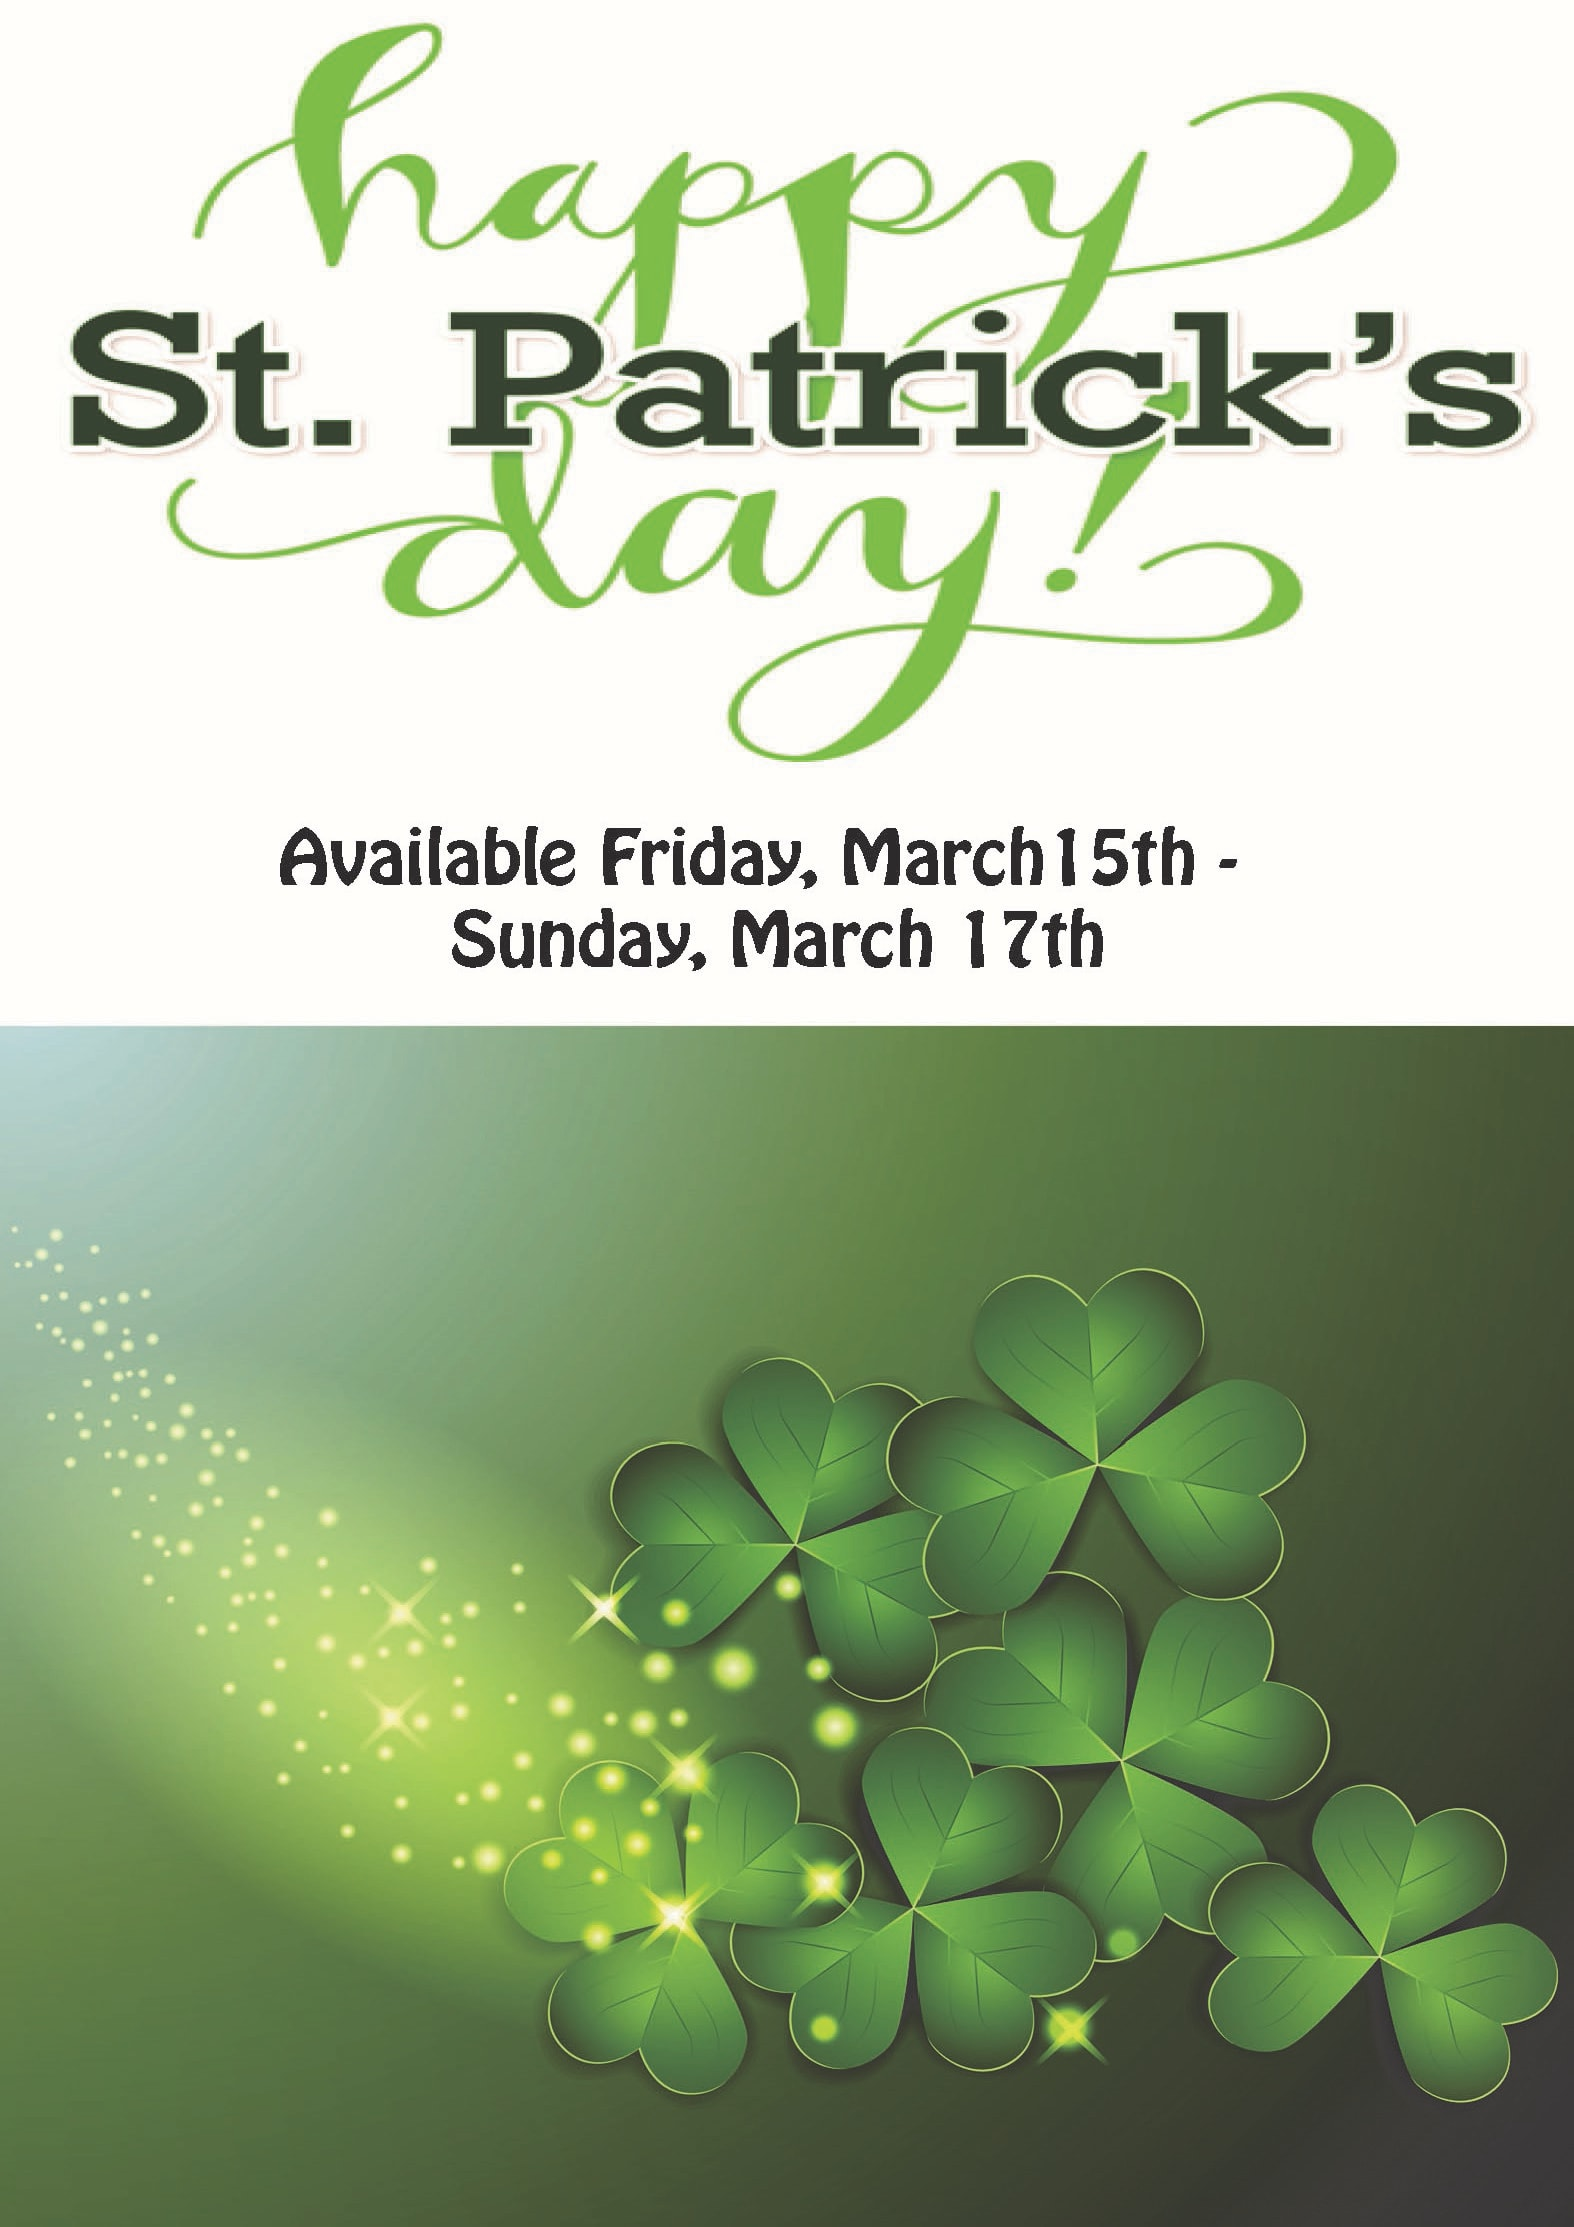 St. Patrick's Day, Available Friday March 15th through Sunday March 17th